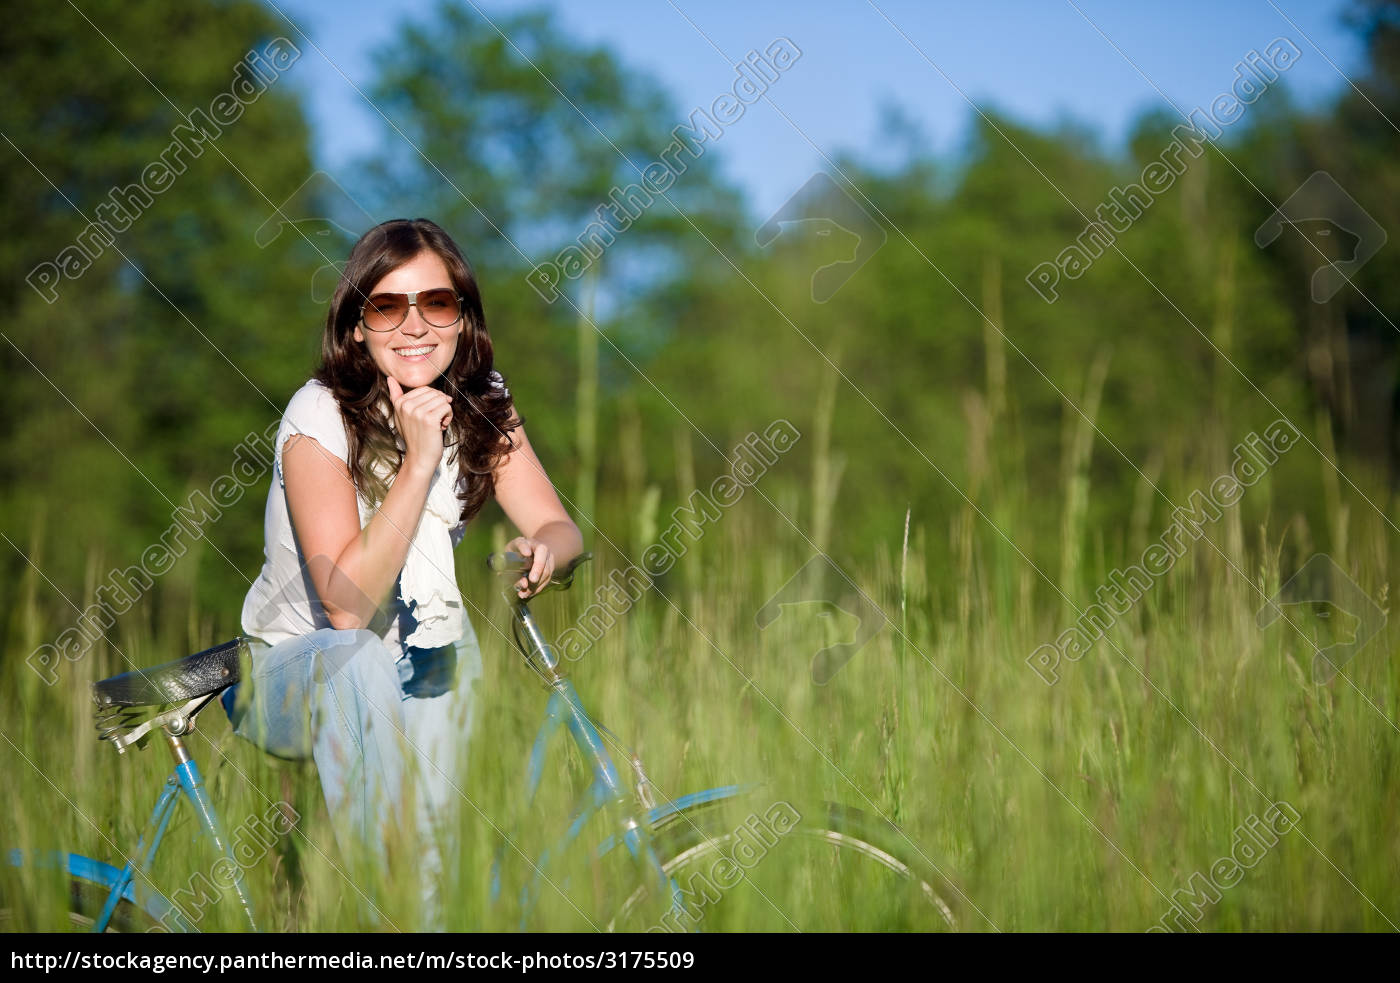 woman, with, old-fashioned, bike, in, meadow - 3175509